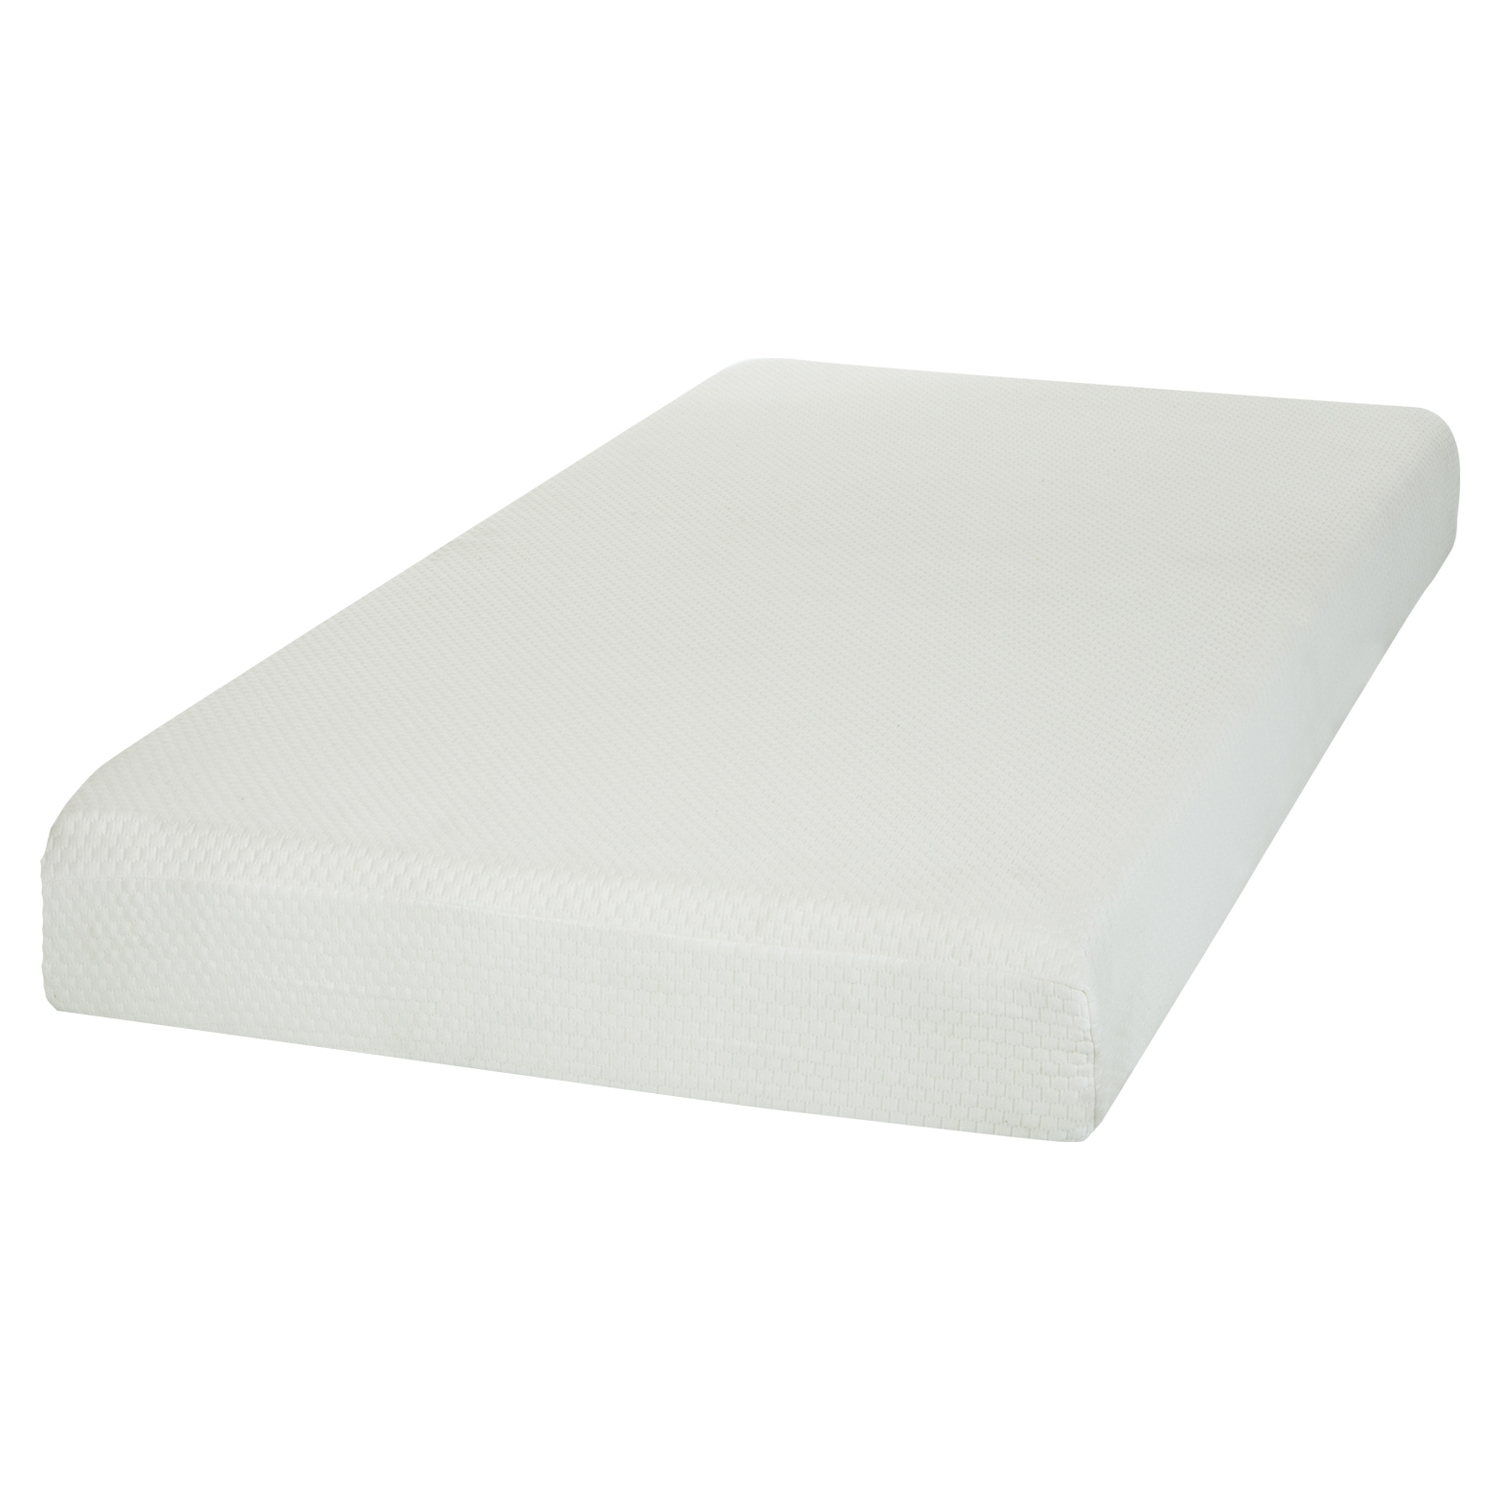 "Somea Basic 6"" Twin Mattress - White - SS-100001"